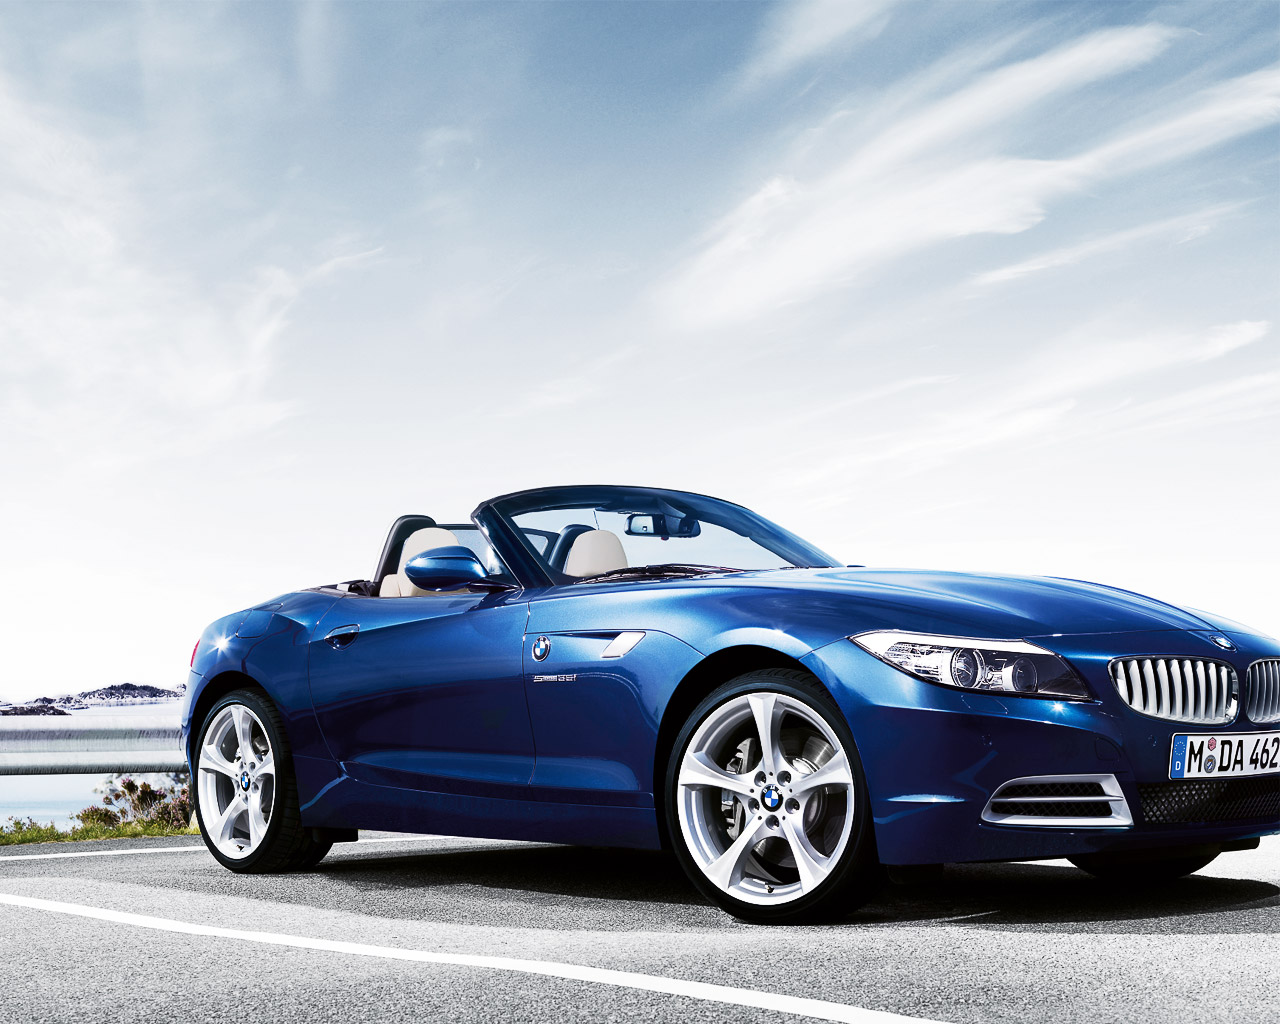 THE most amazing 2009 BMW Z4 wallpapers 1280x1024